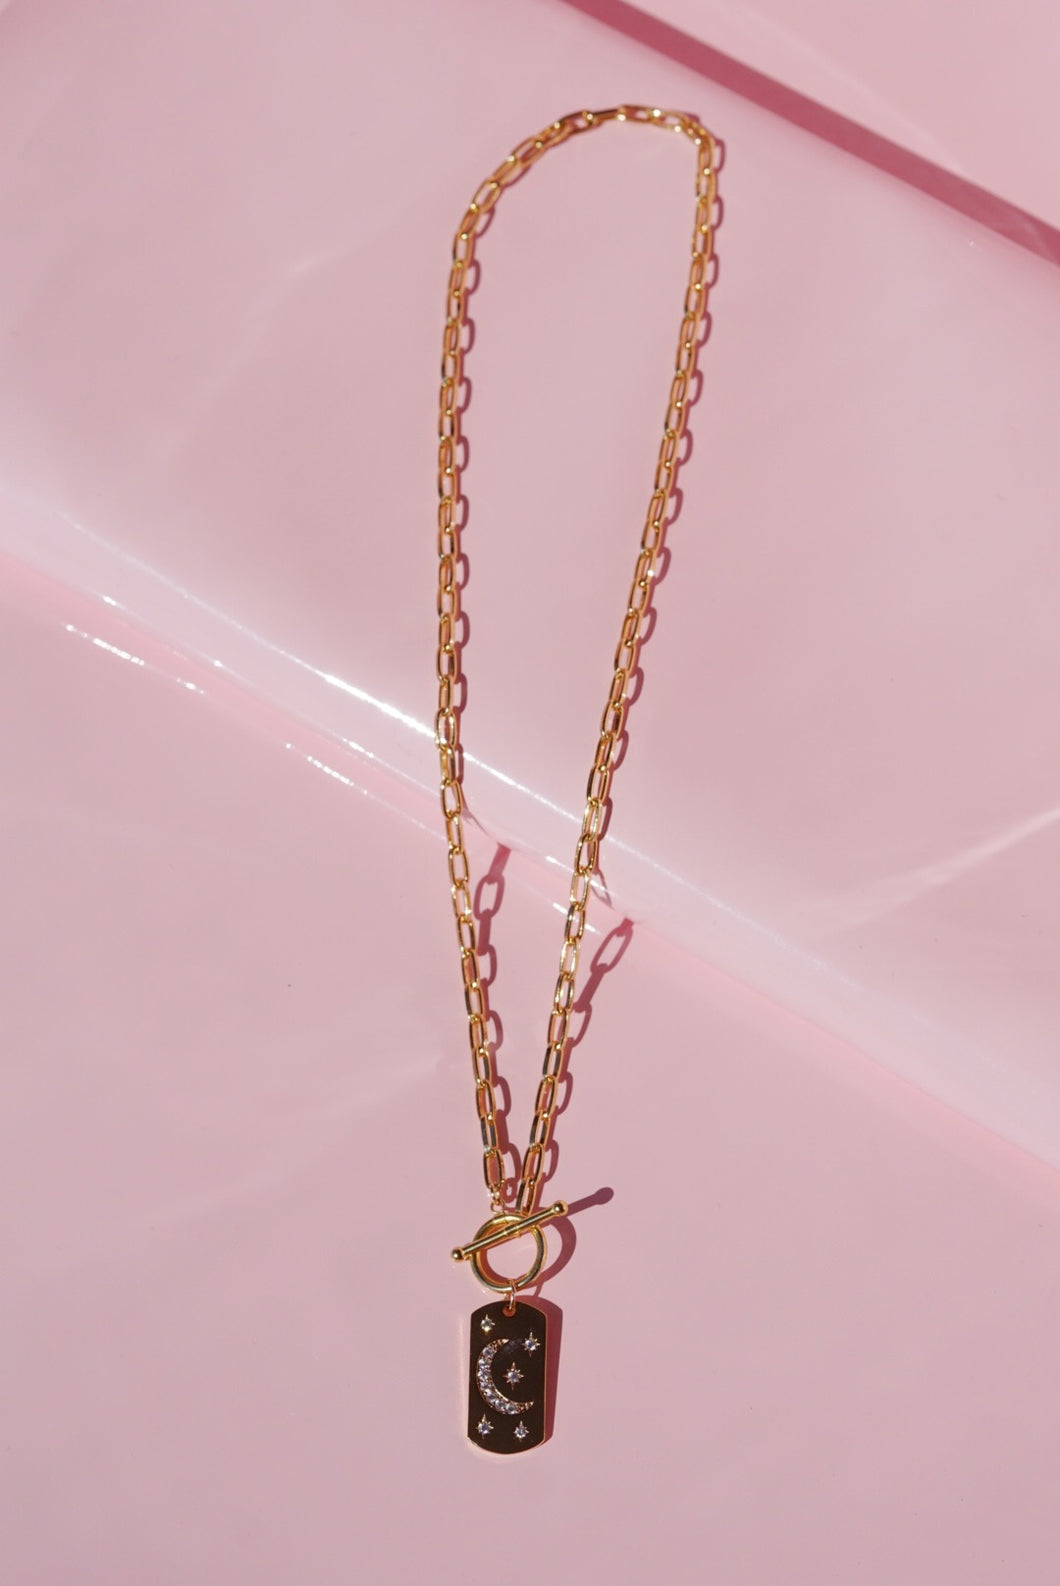 ELIO Celestial Dog Tag Toggle Clasp Link Necklace